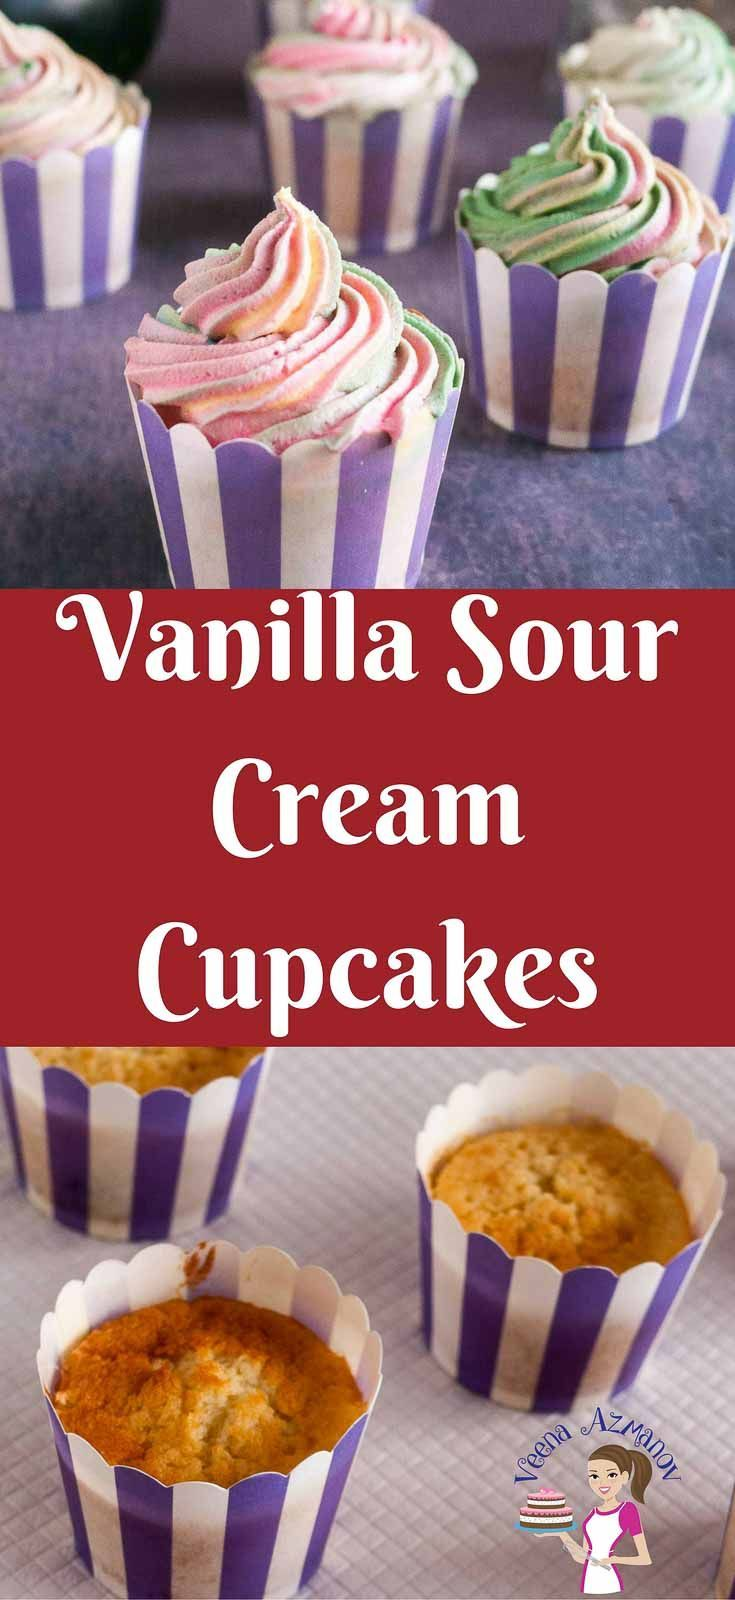 Moist Vanilla Sour Cream Cupcakes With Sweet Cream Buttercream Sour Cream Recipes Recipes Delicious Desserts